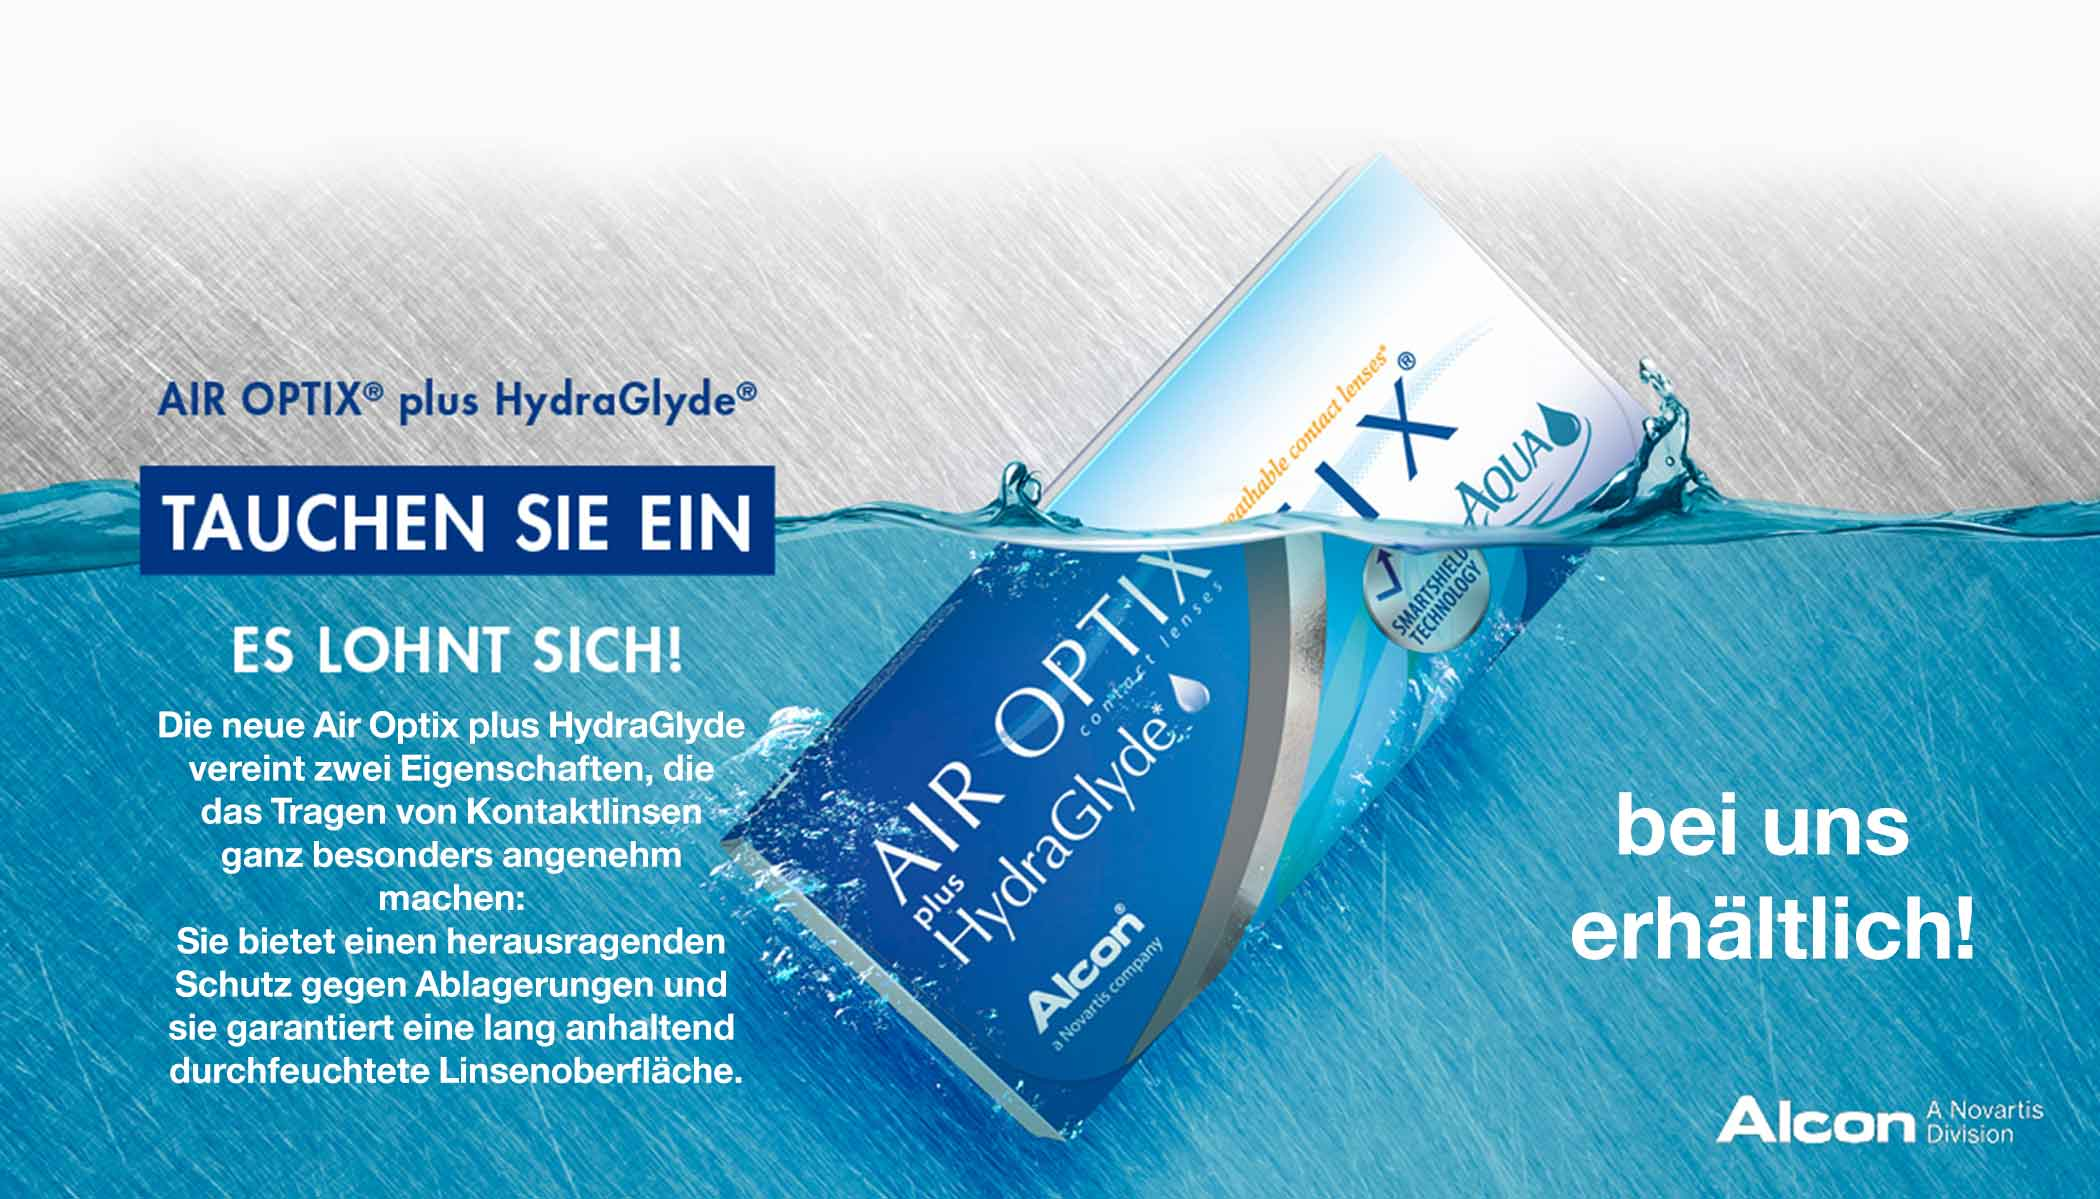 Air Optix plus HydroGlyde